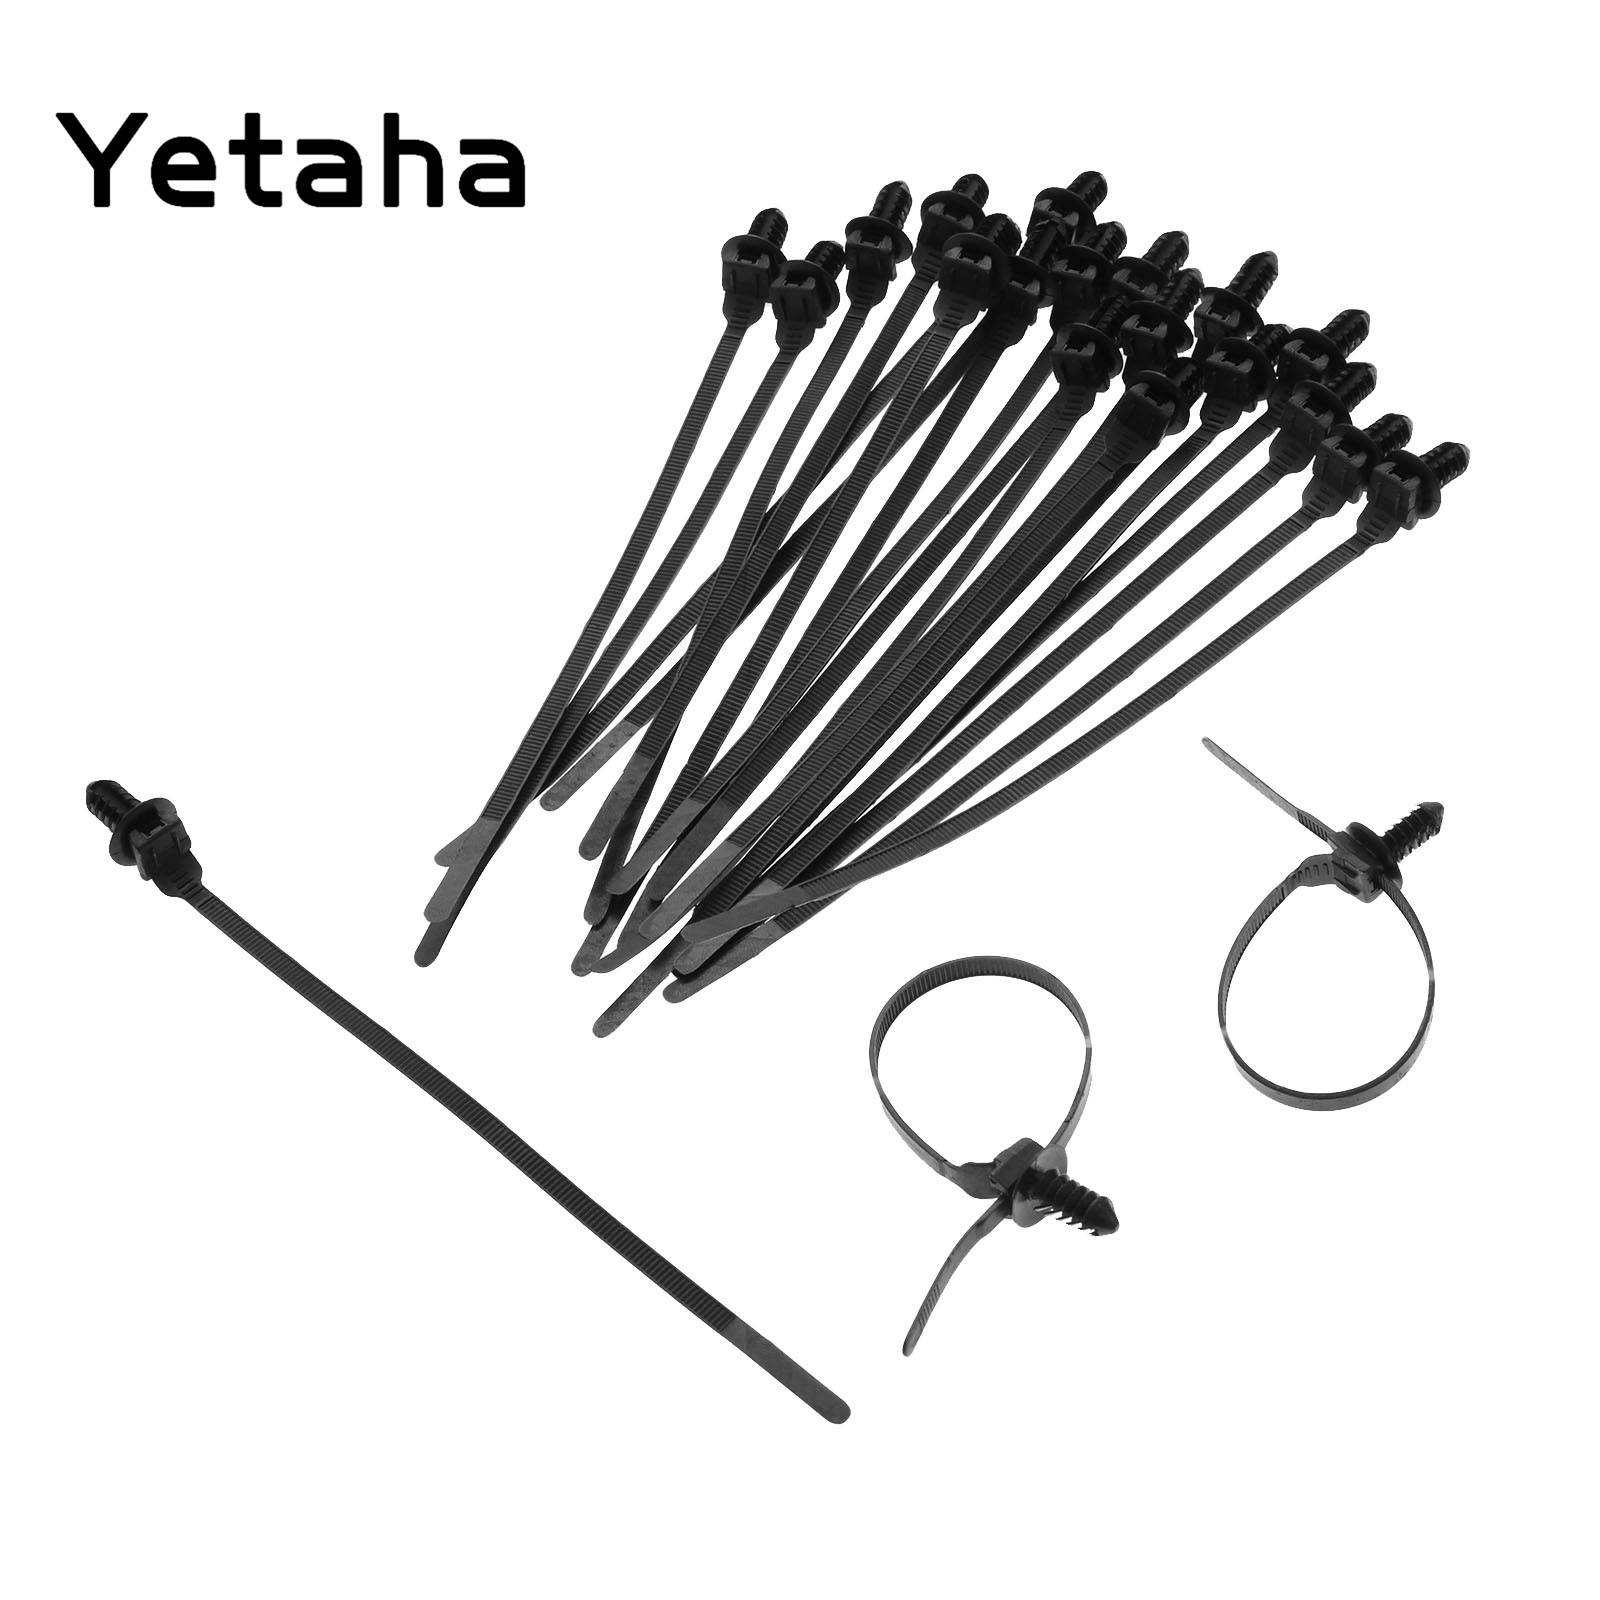 Yetaha 30 Pcs Nylon Black Car Cable Strap Push Mount Wire